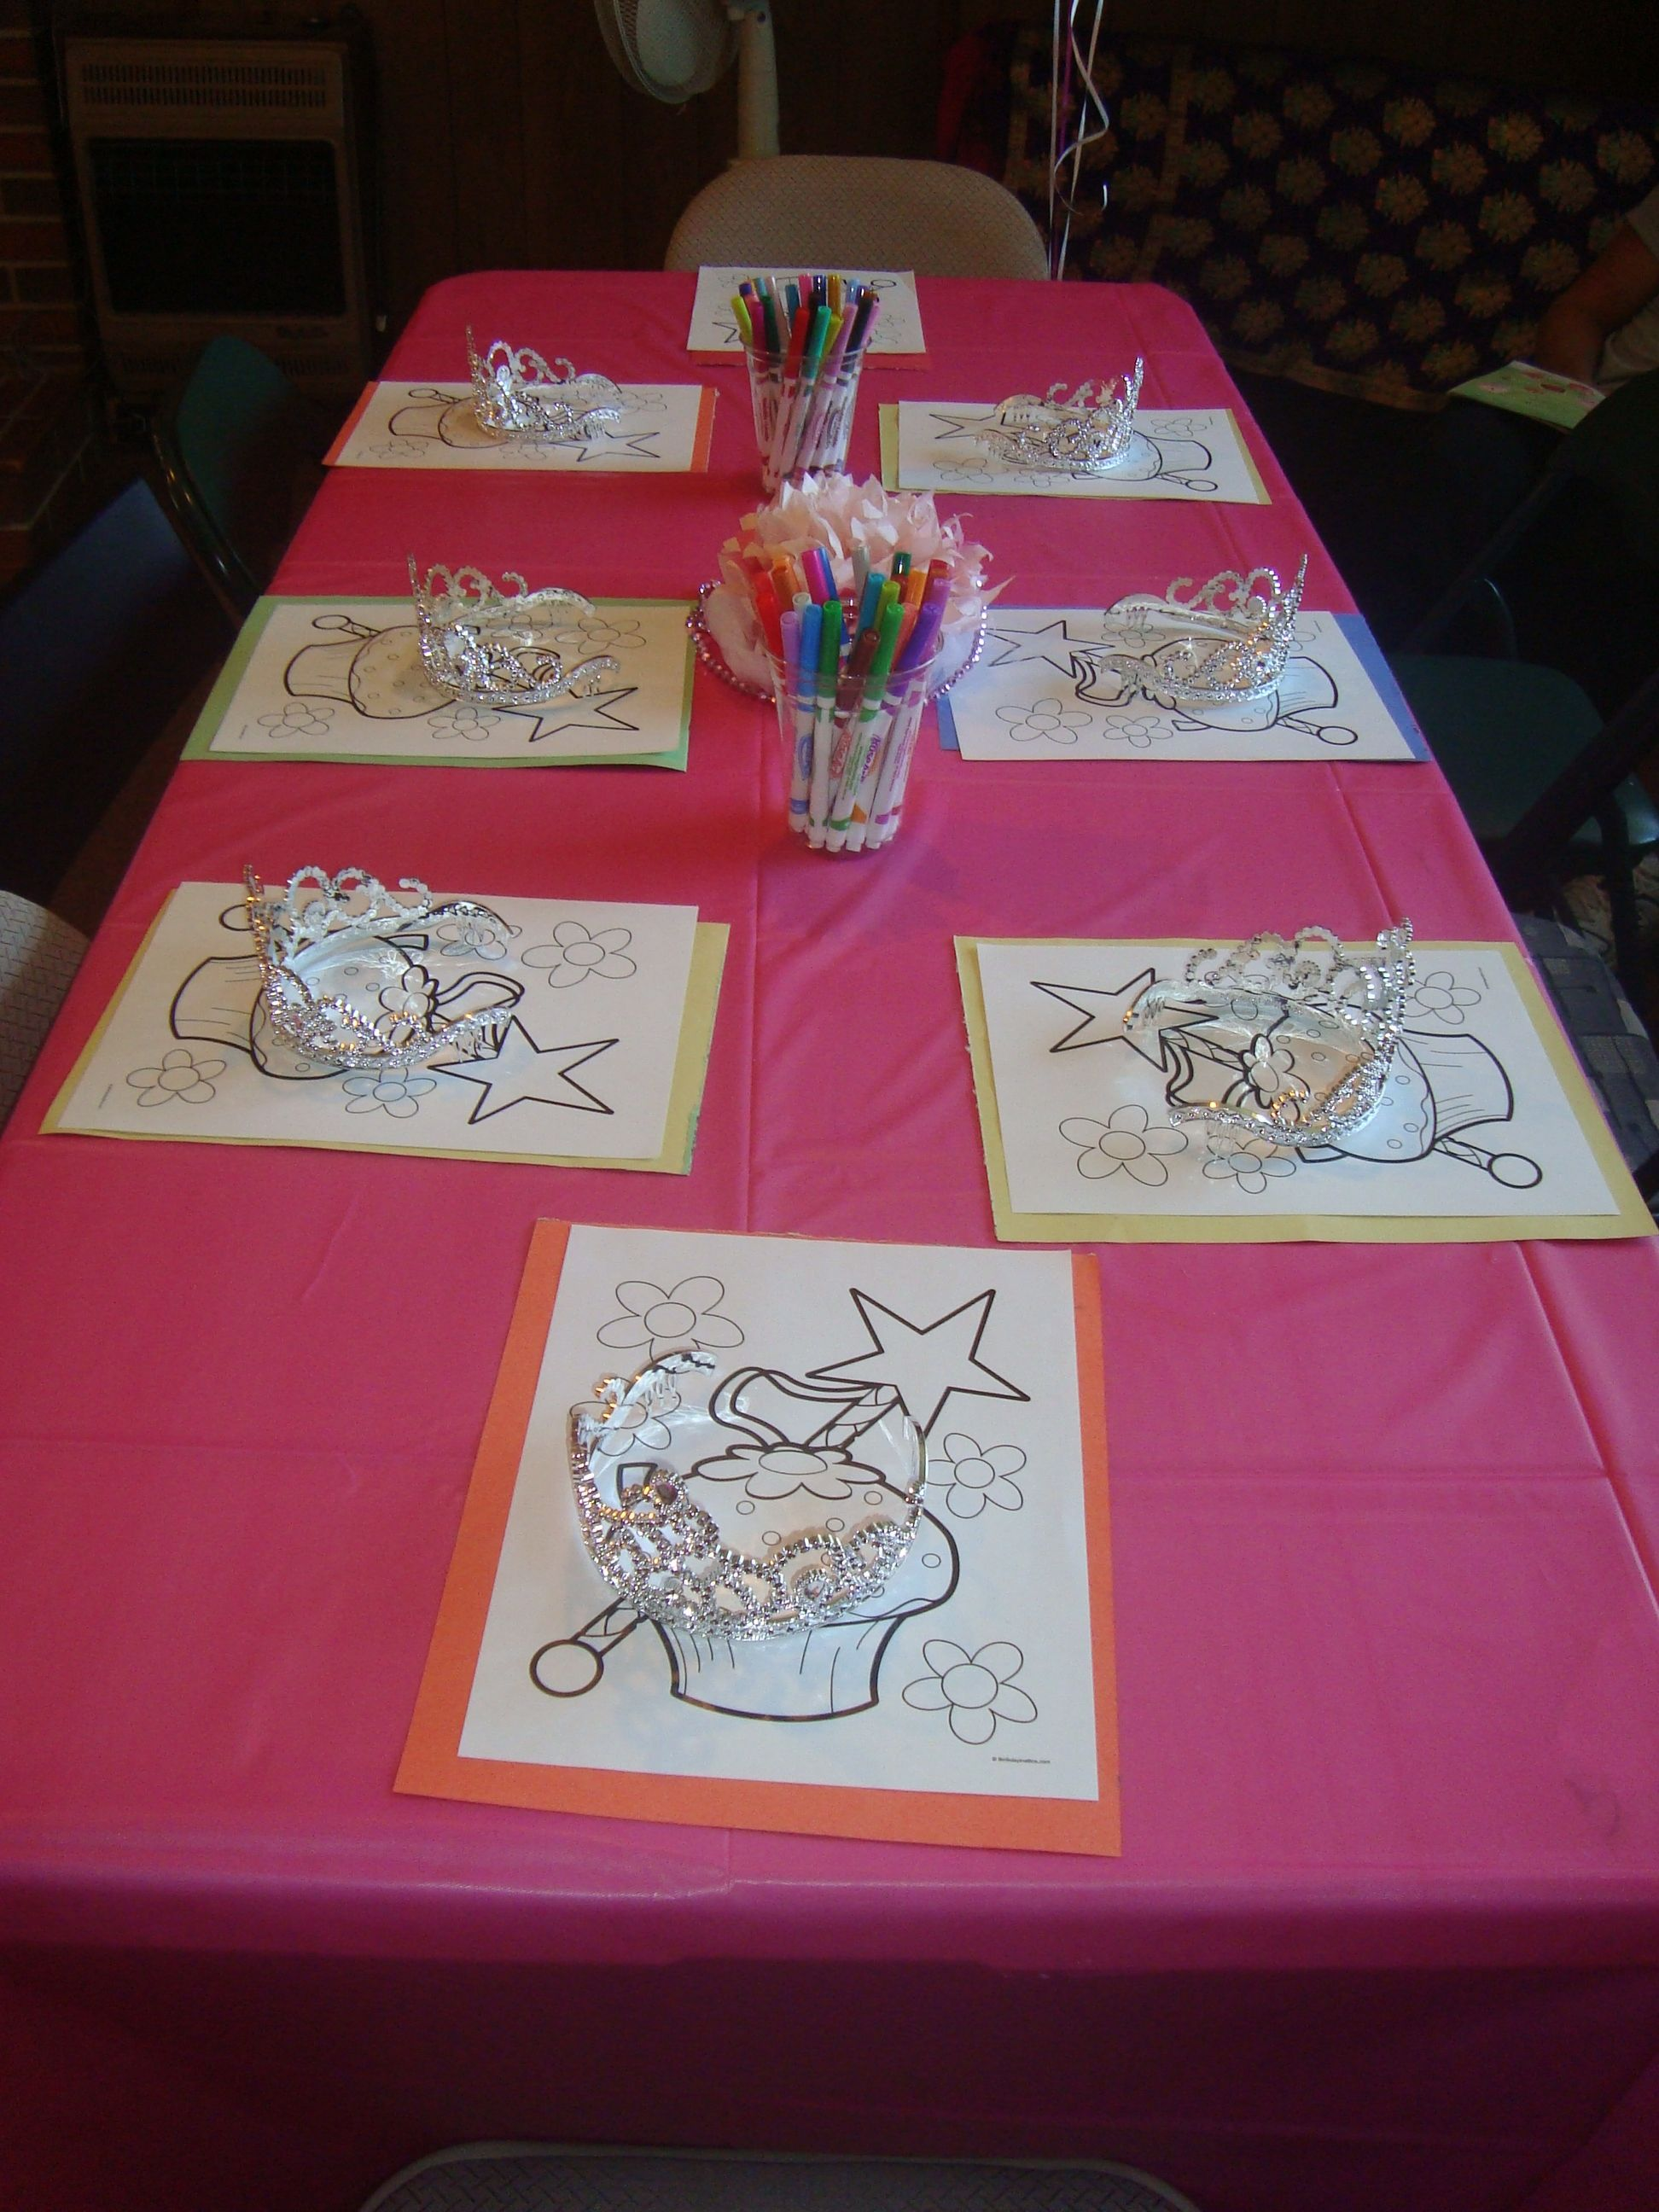 This is one of the activities welcoming guests to the pinkalicious party.